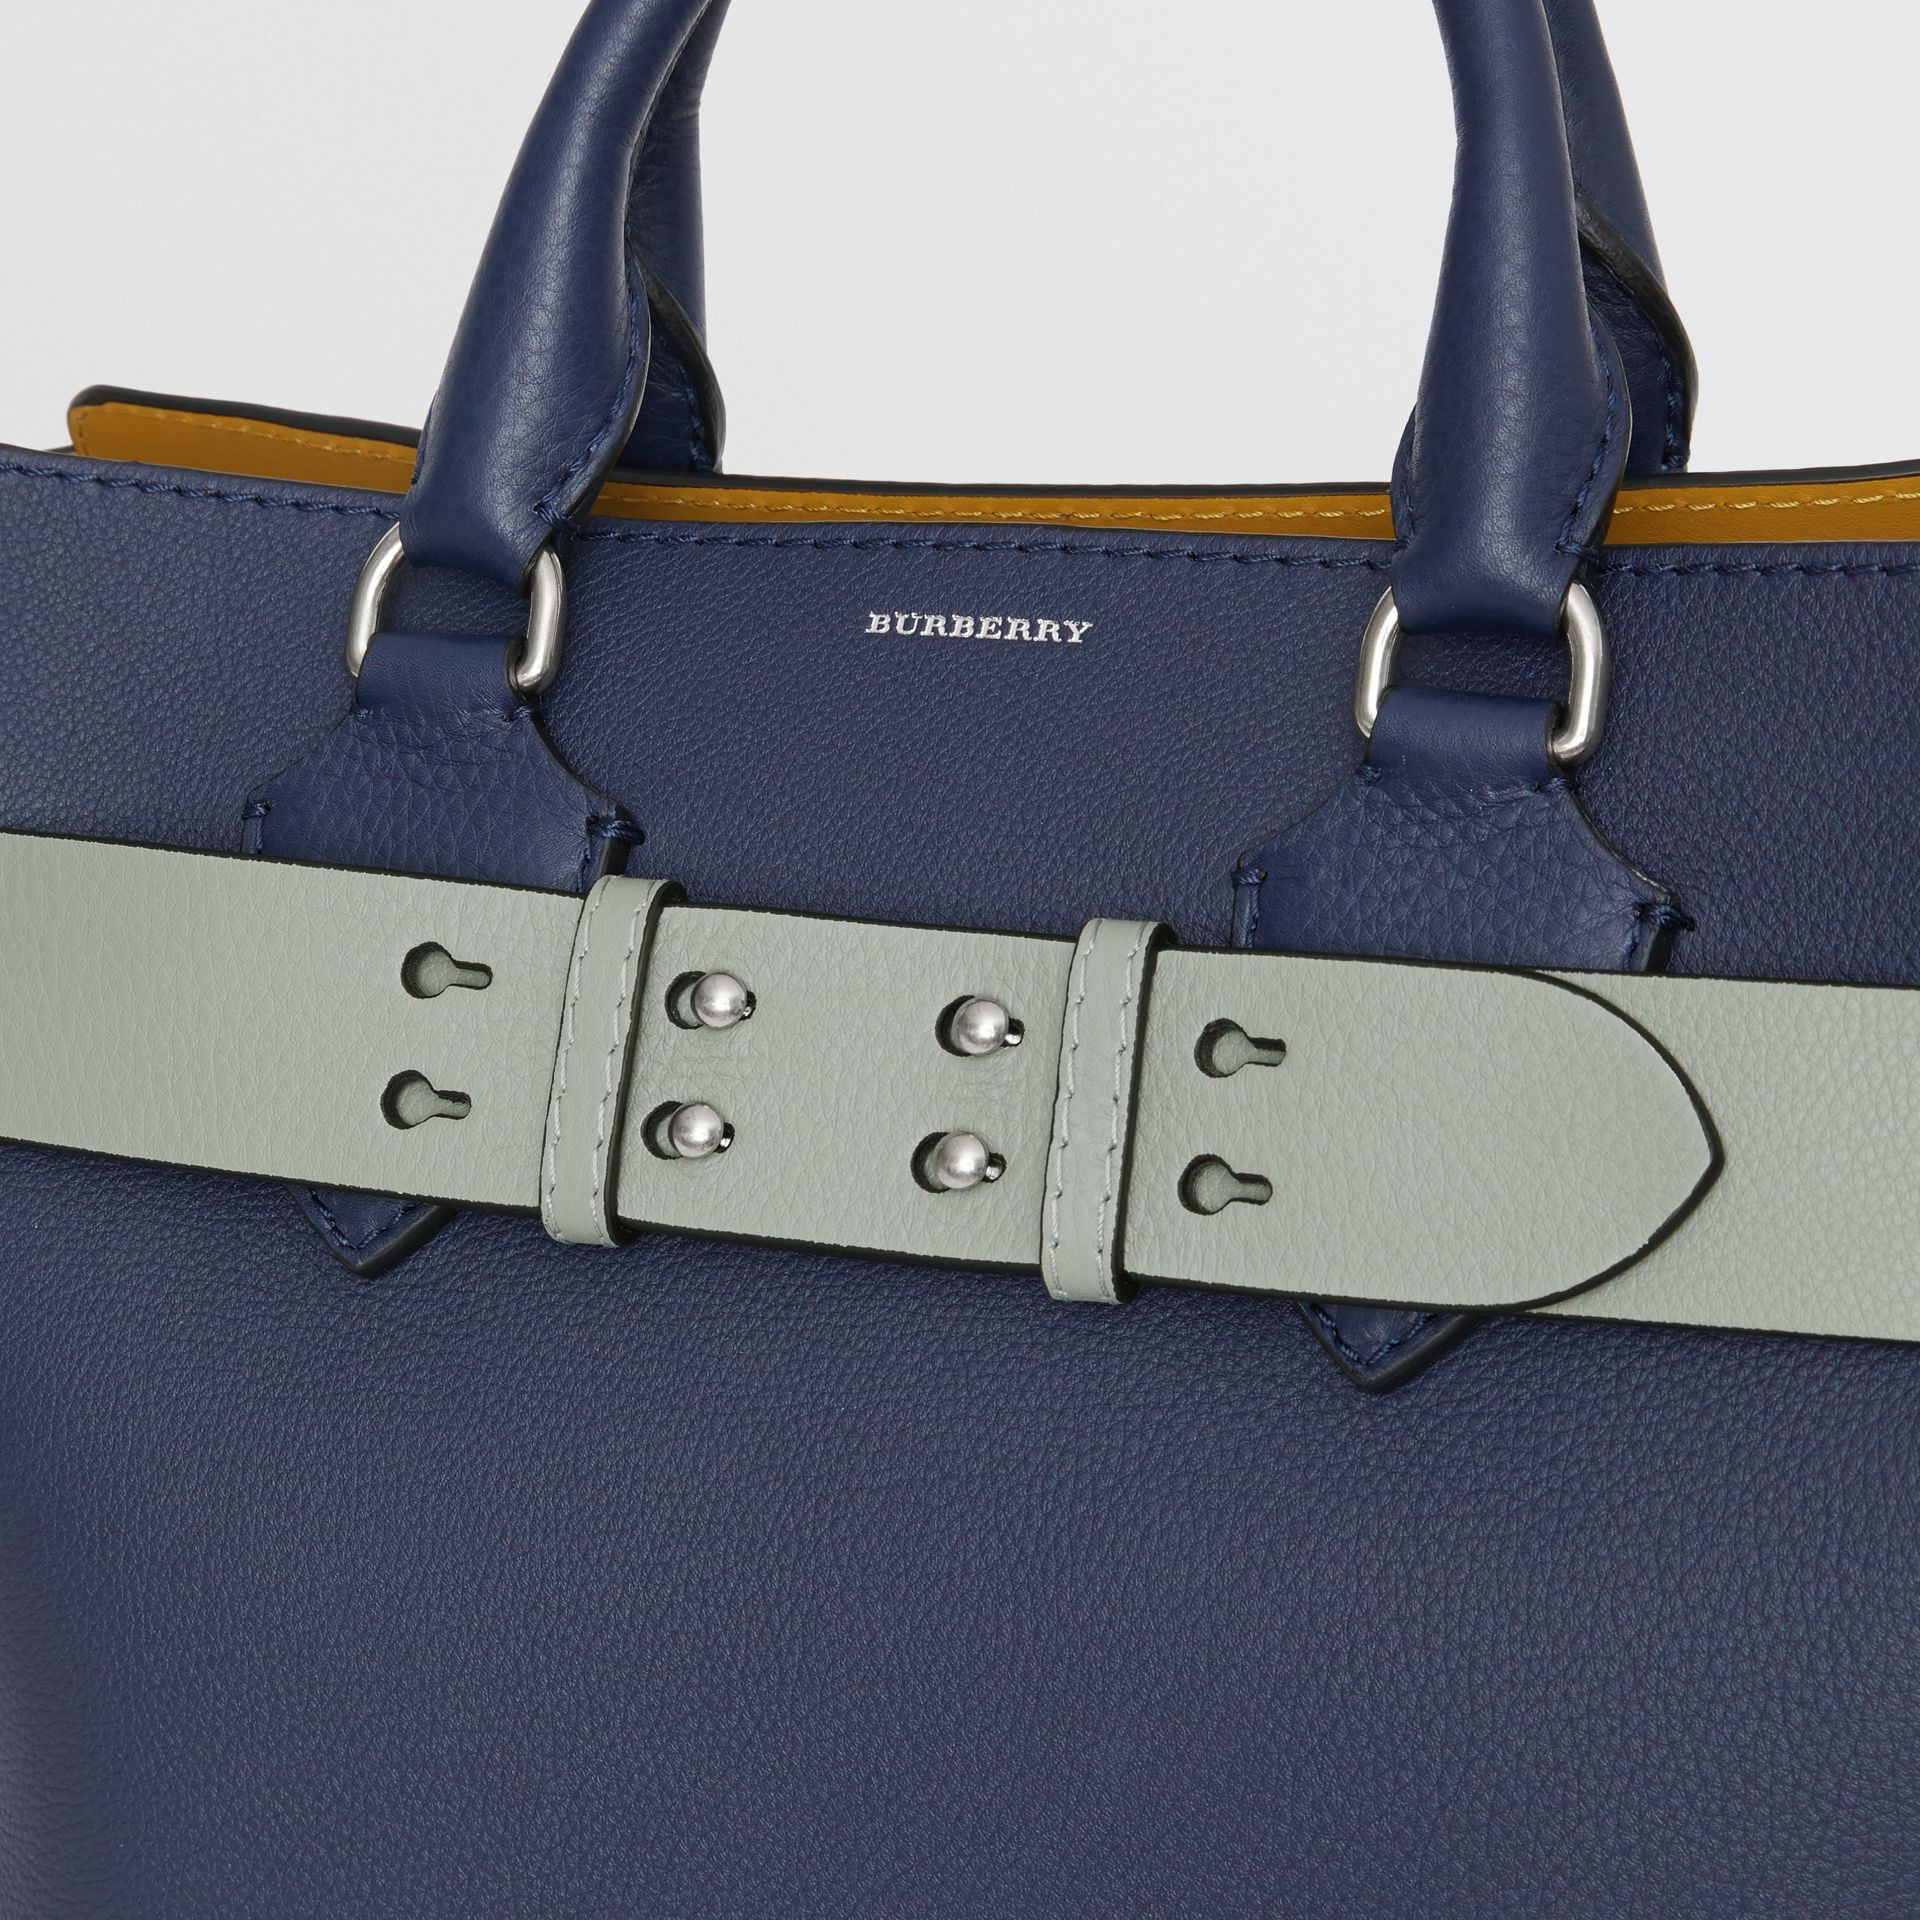 The Medium Belt Bag Grainy Leather Belt in Grey Blue - Women | Burberry - gallery image 1